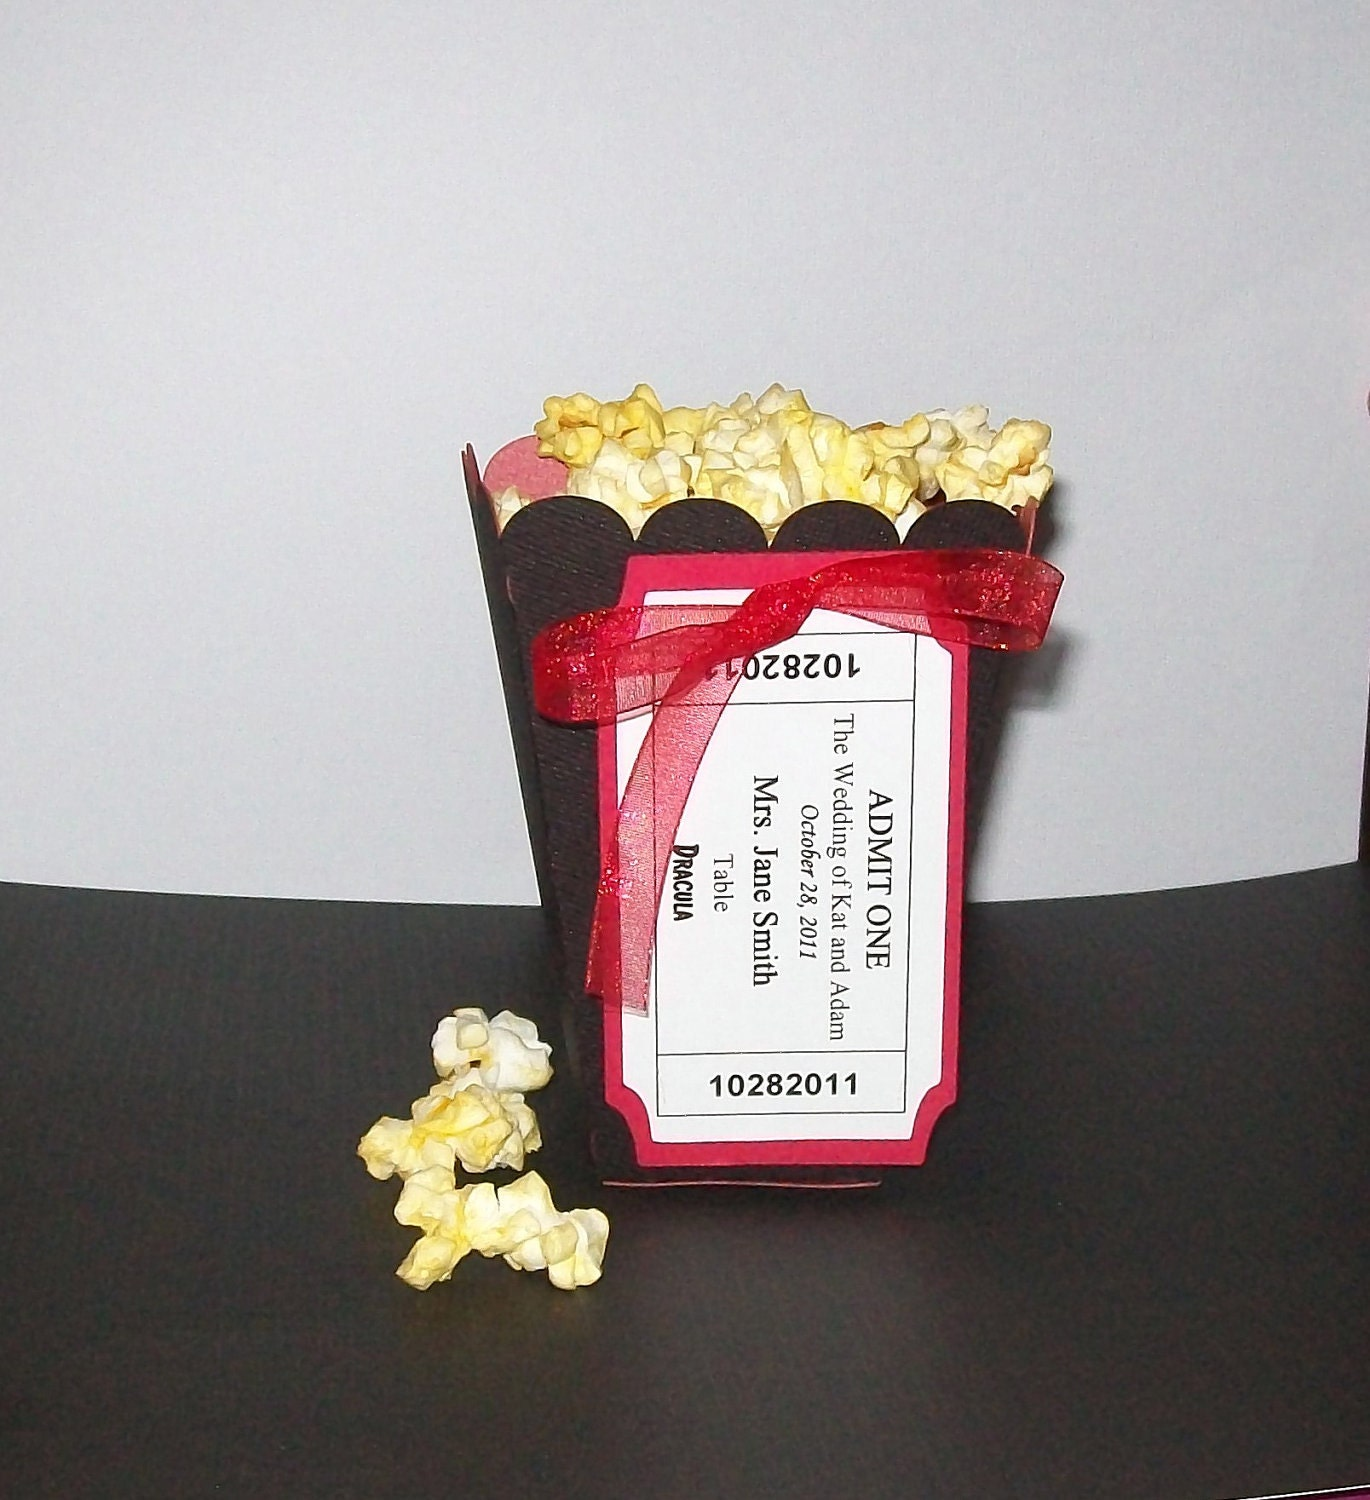 Popcorn Favor Boxes with Movie Tickets Escort Cards Place